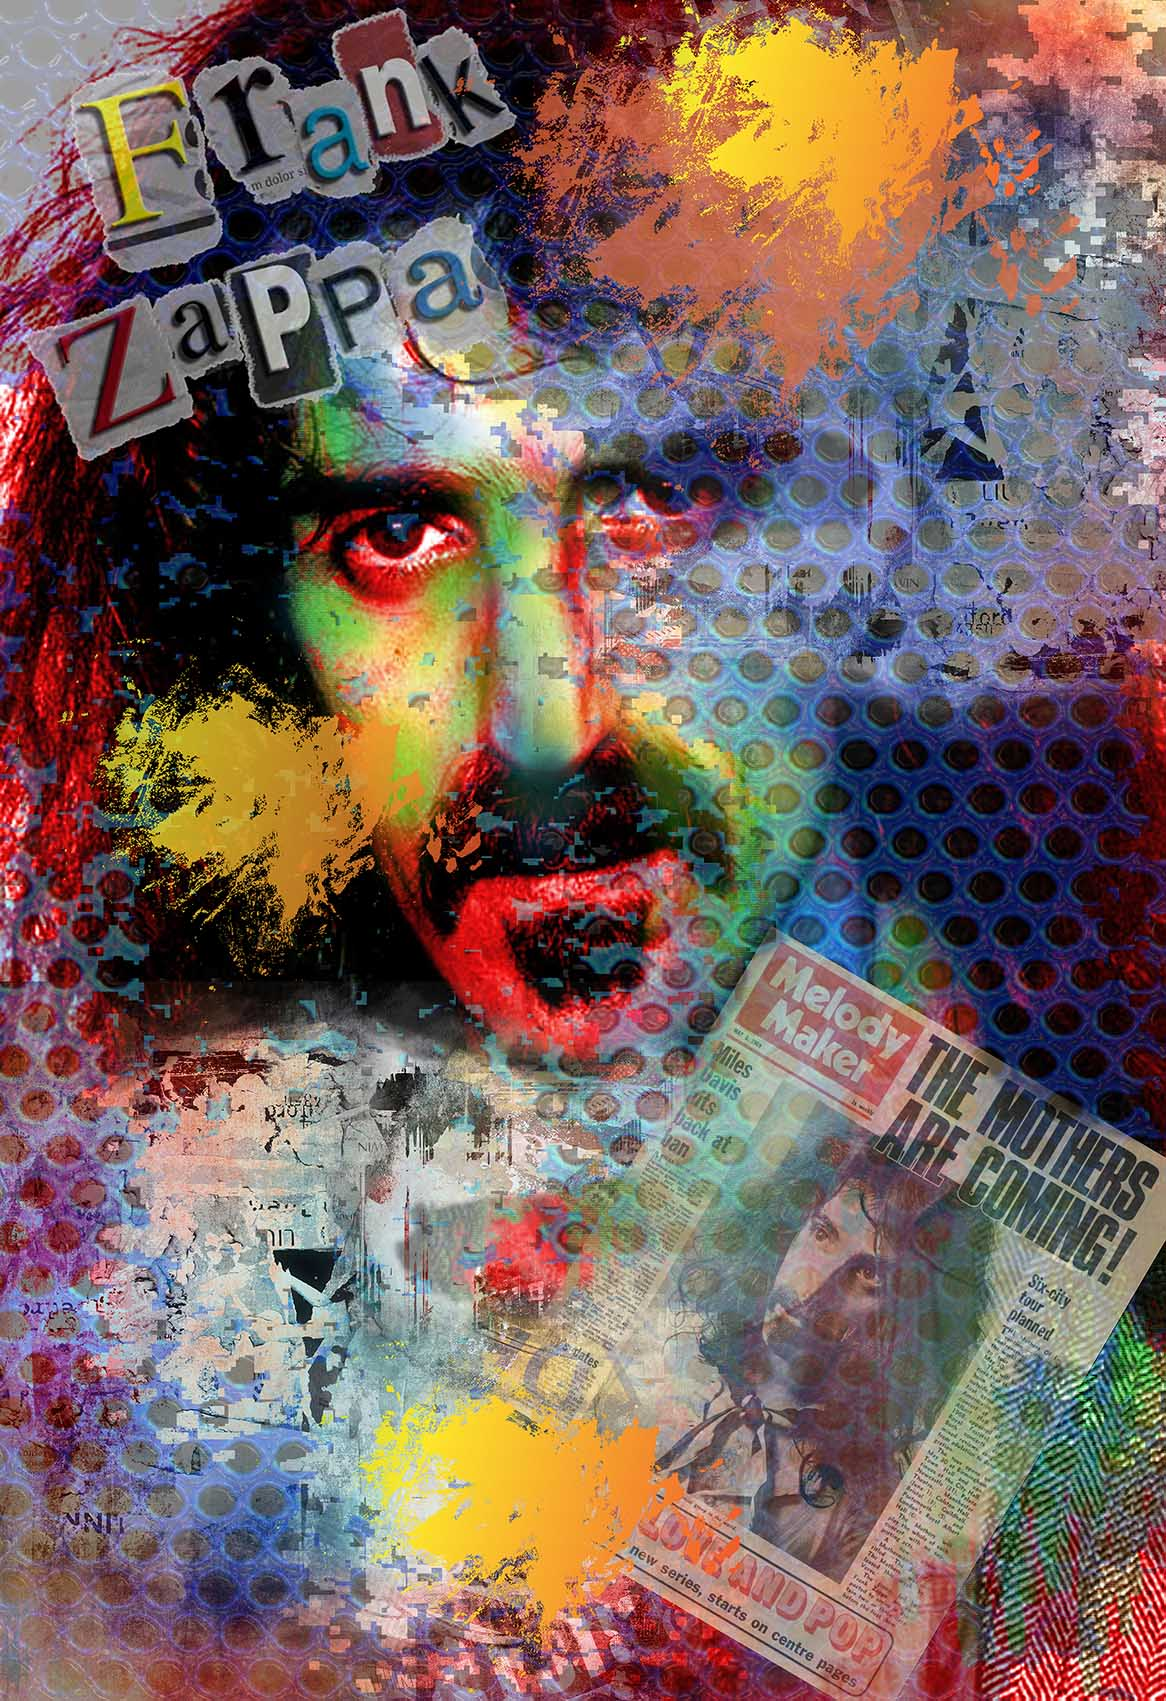 Frank Zappa, O Irreverente incorrigível (Frank Zappa, The Irreverent incorrigible)